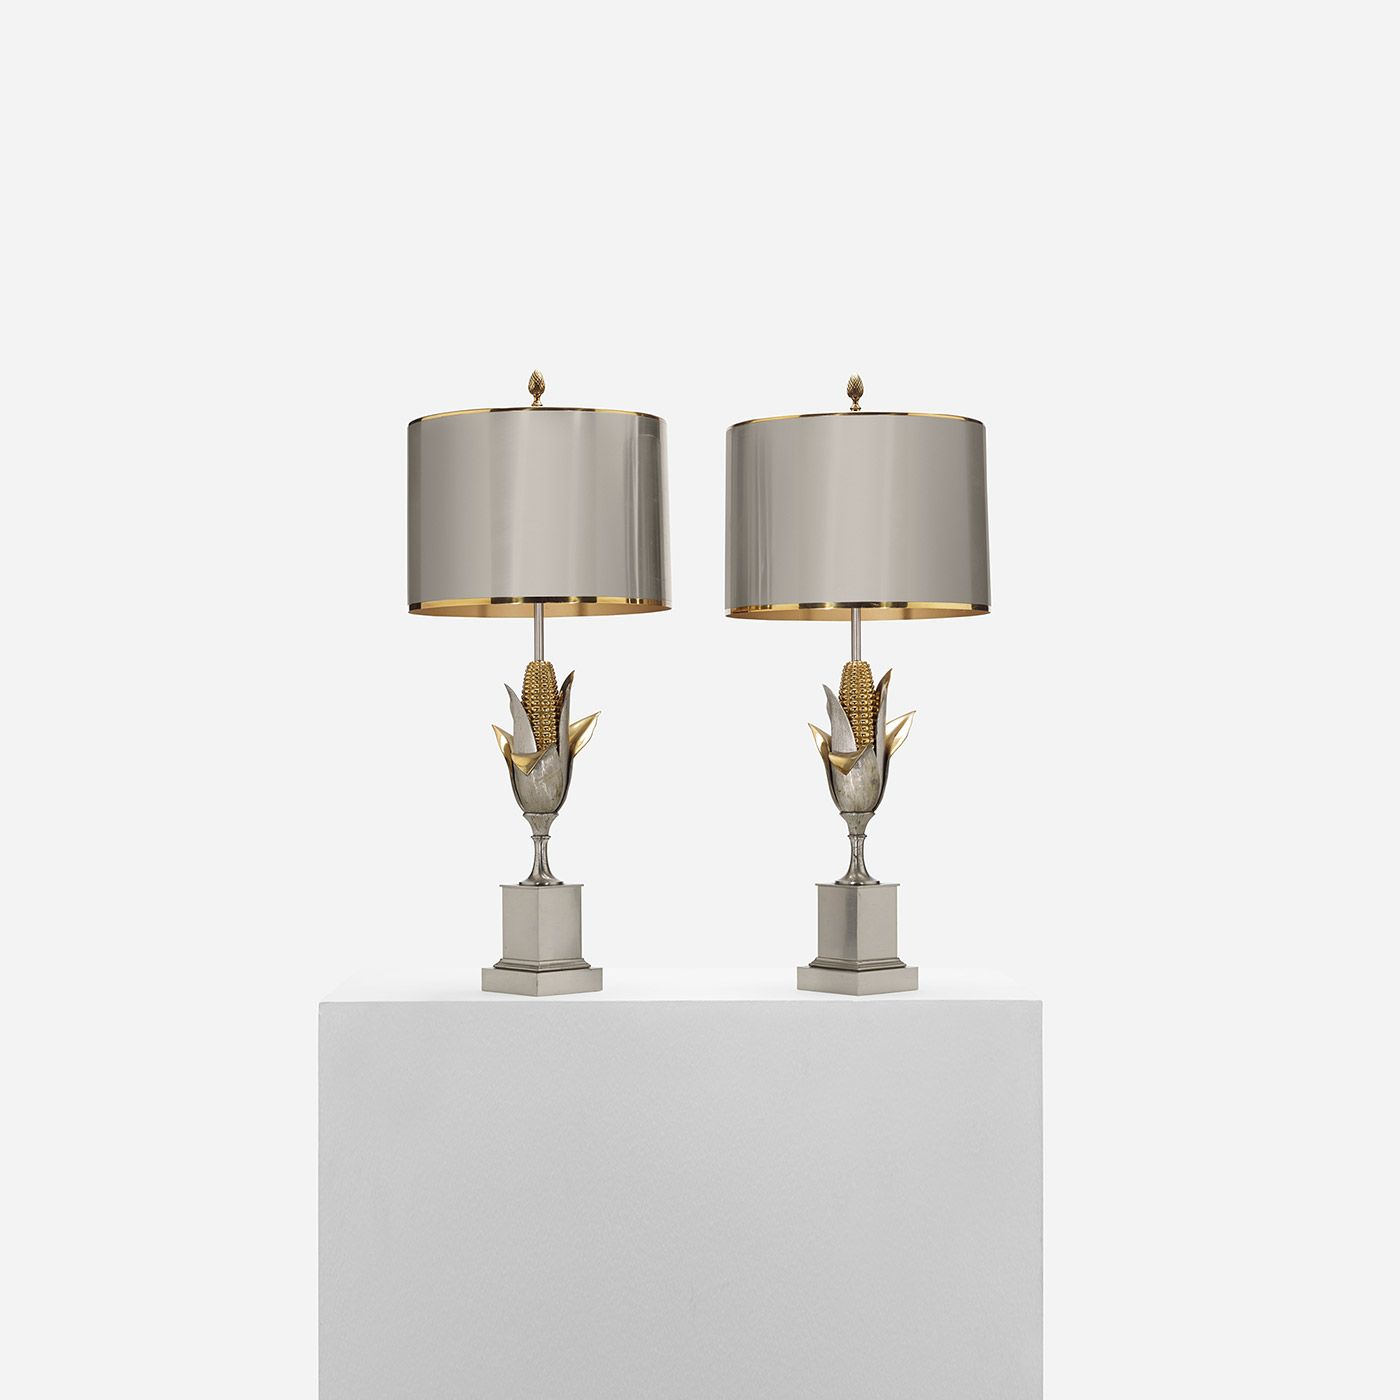 Outstanding 259 Maison Charles Table Lamps Pair Living Home Interior And Landscaping Mentranervesignezvosmurscom